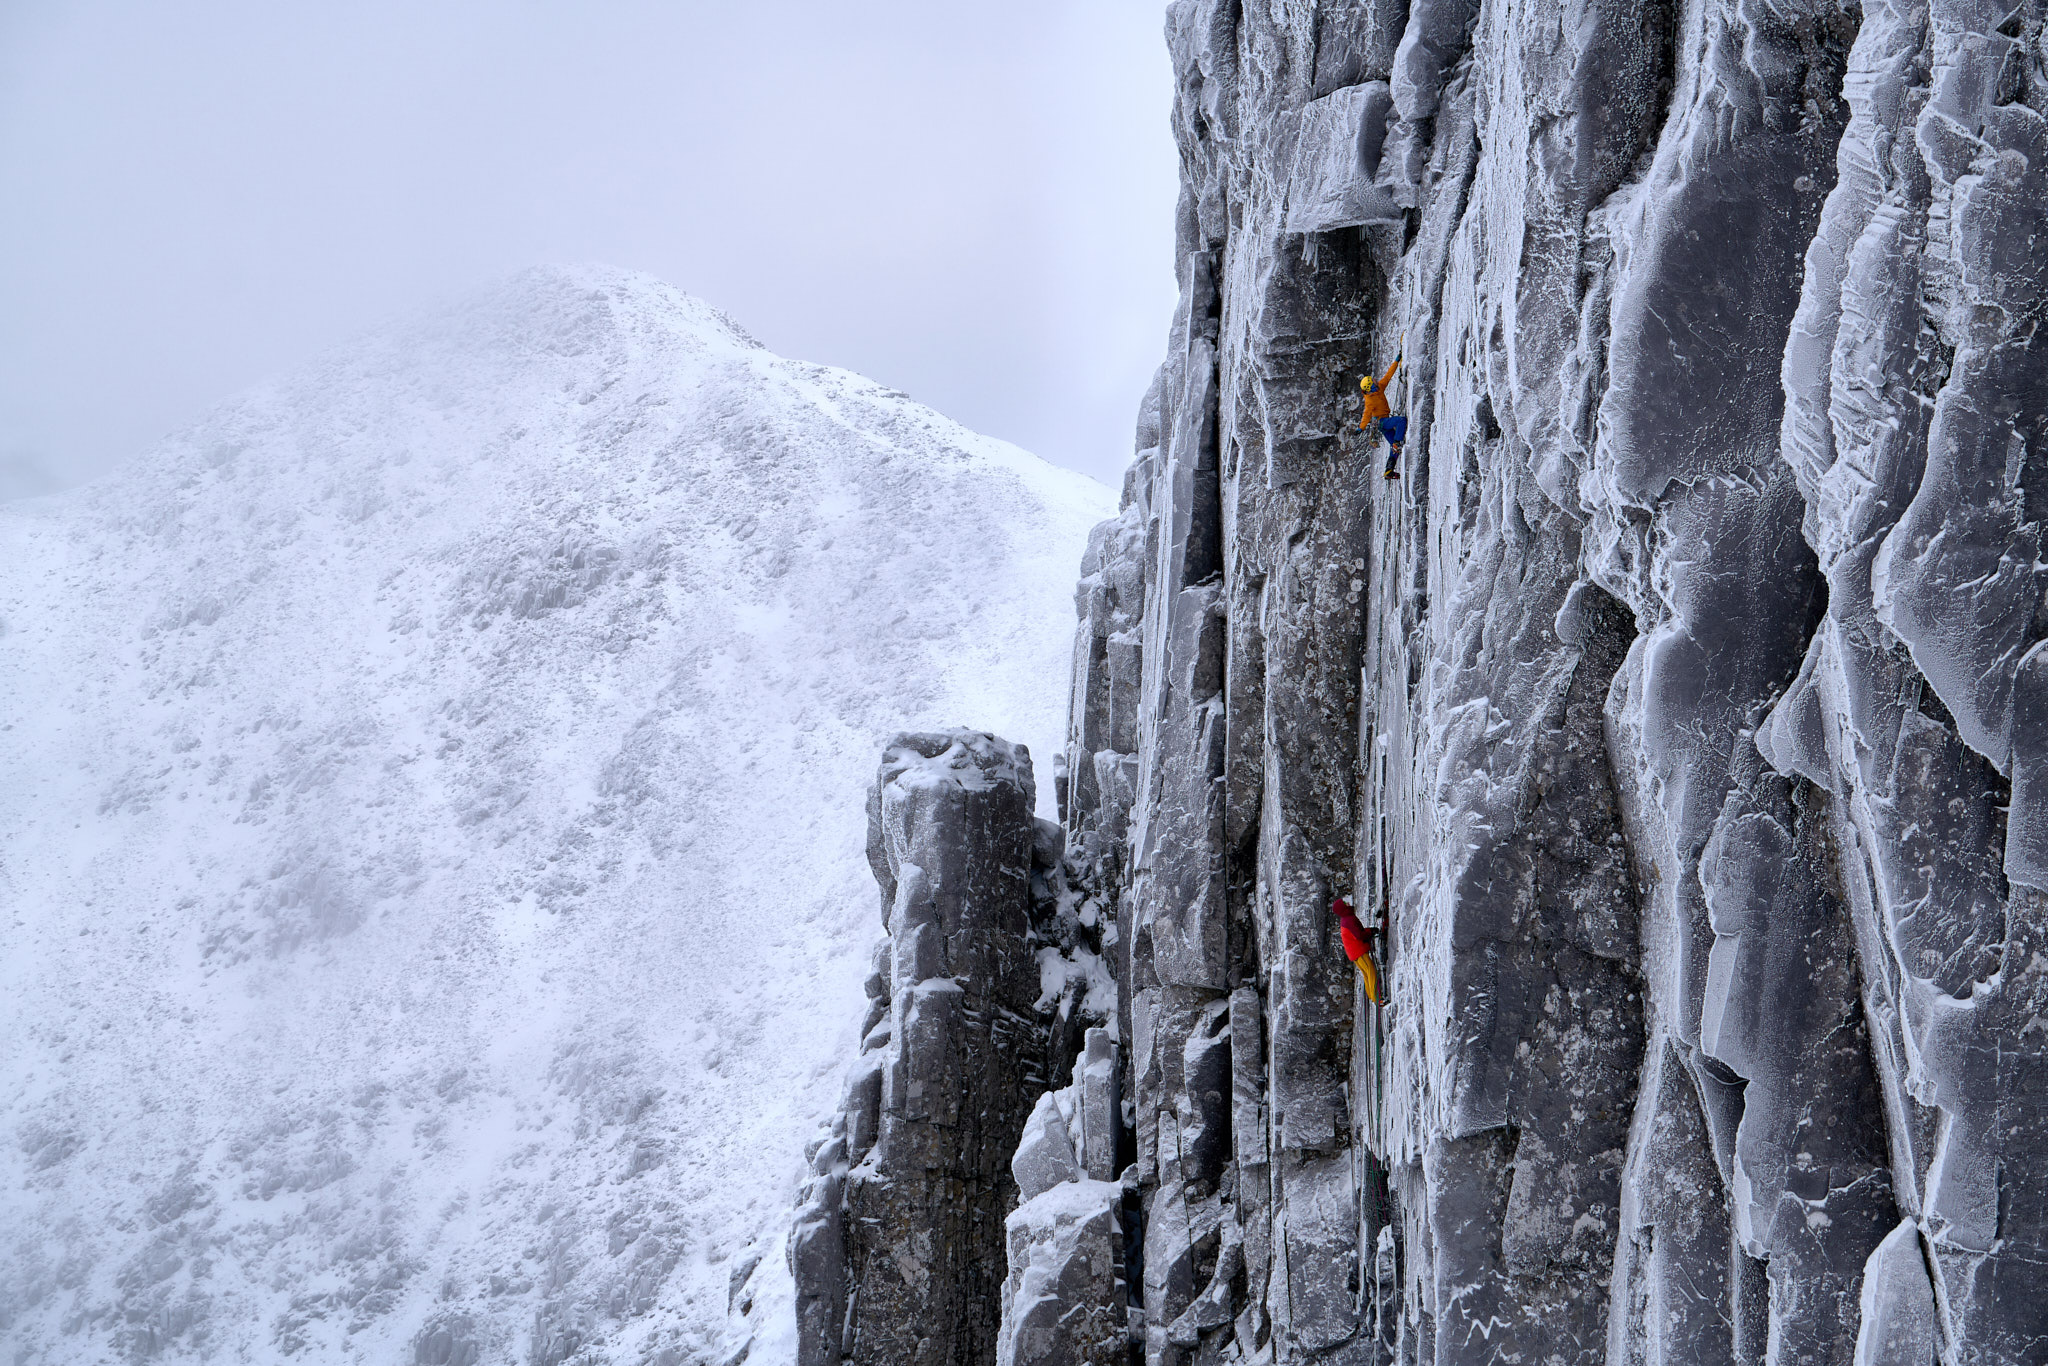 Guy Robertson leading the third pitch of 'Lost Arrow Winter Variation' (X/10)